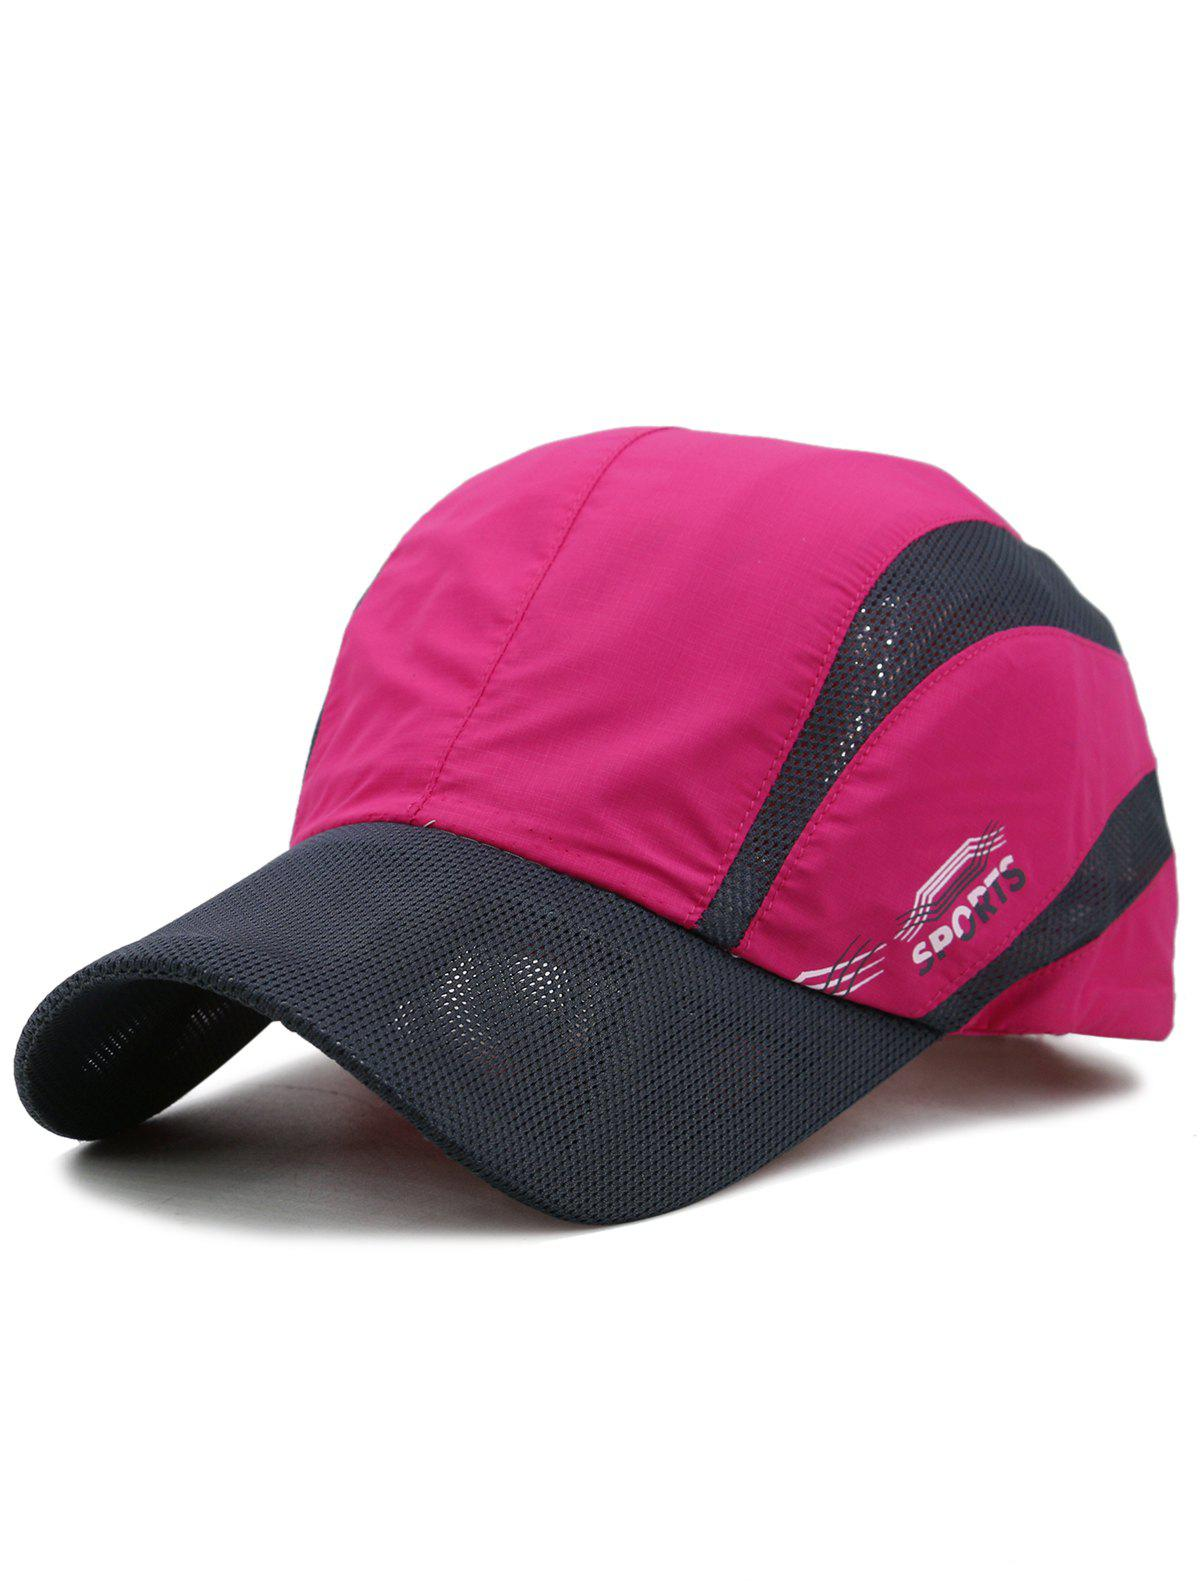 Lightweight Quick Dry Mesh Trucker Hat - ROSE RED